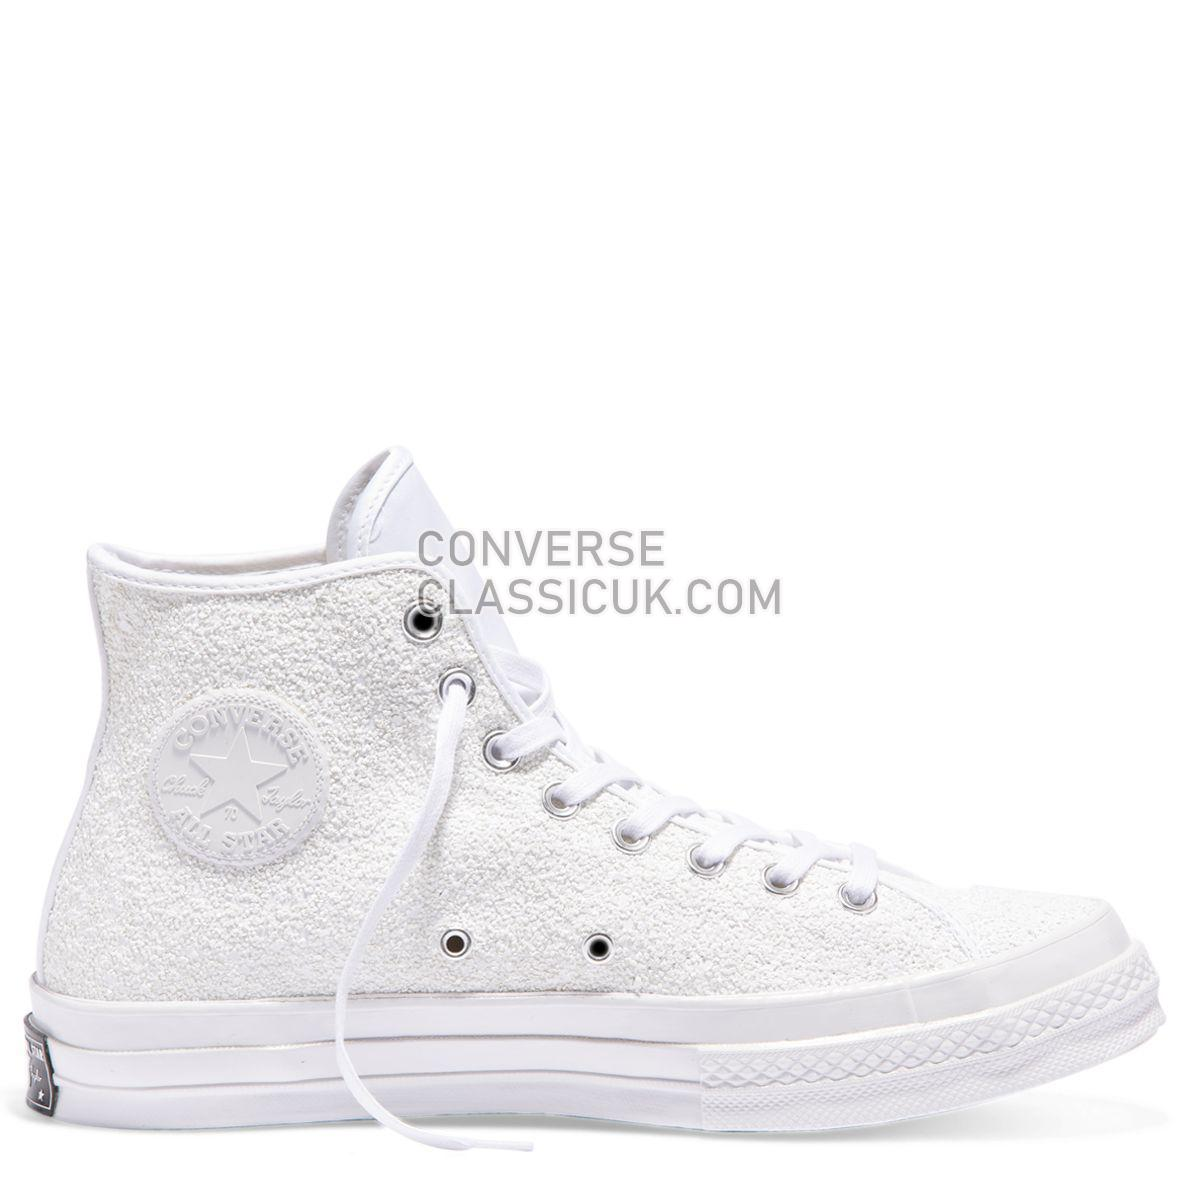 Converse Chuck Taylor All Star 70 After Party High Top White Mens 162472 White/Silver/White Shoes